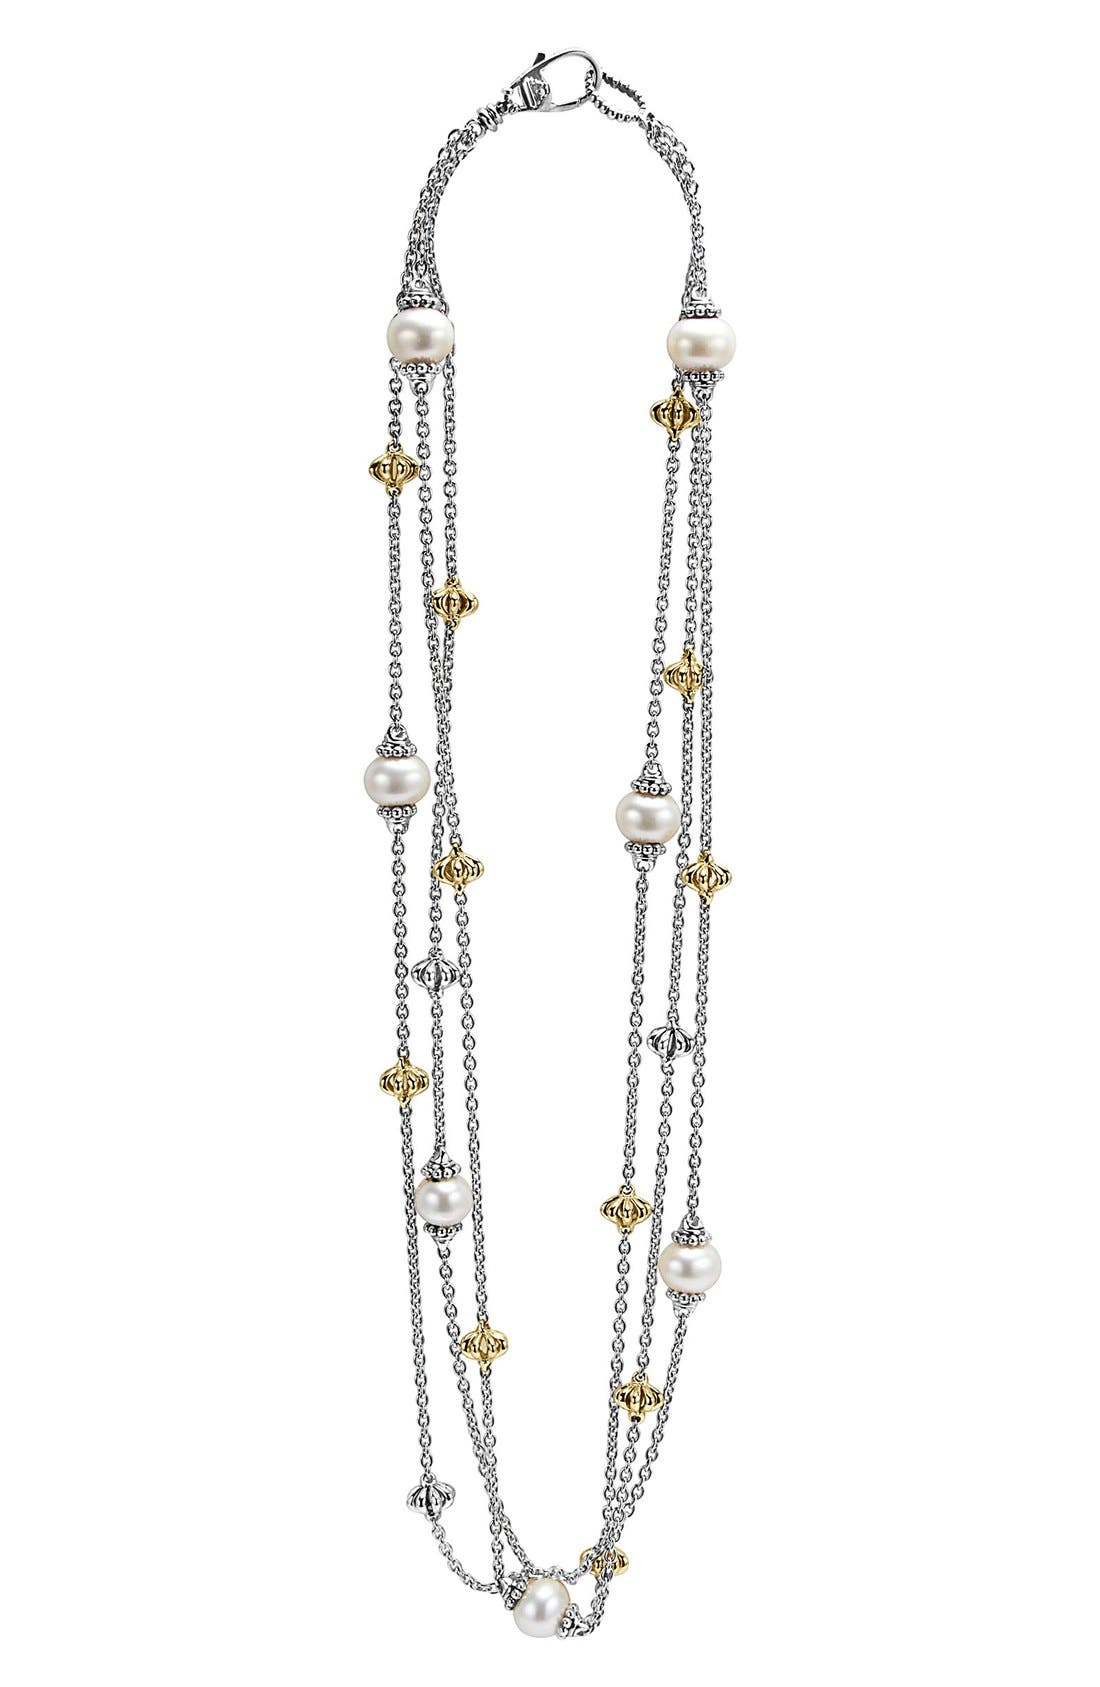 Alternate Image 1 Selected - LAGOS 'Luna' Pearl Three-Strand Link Necklace